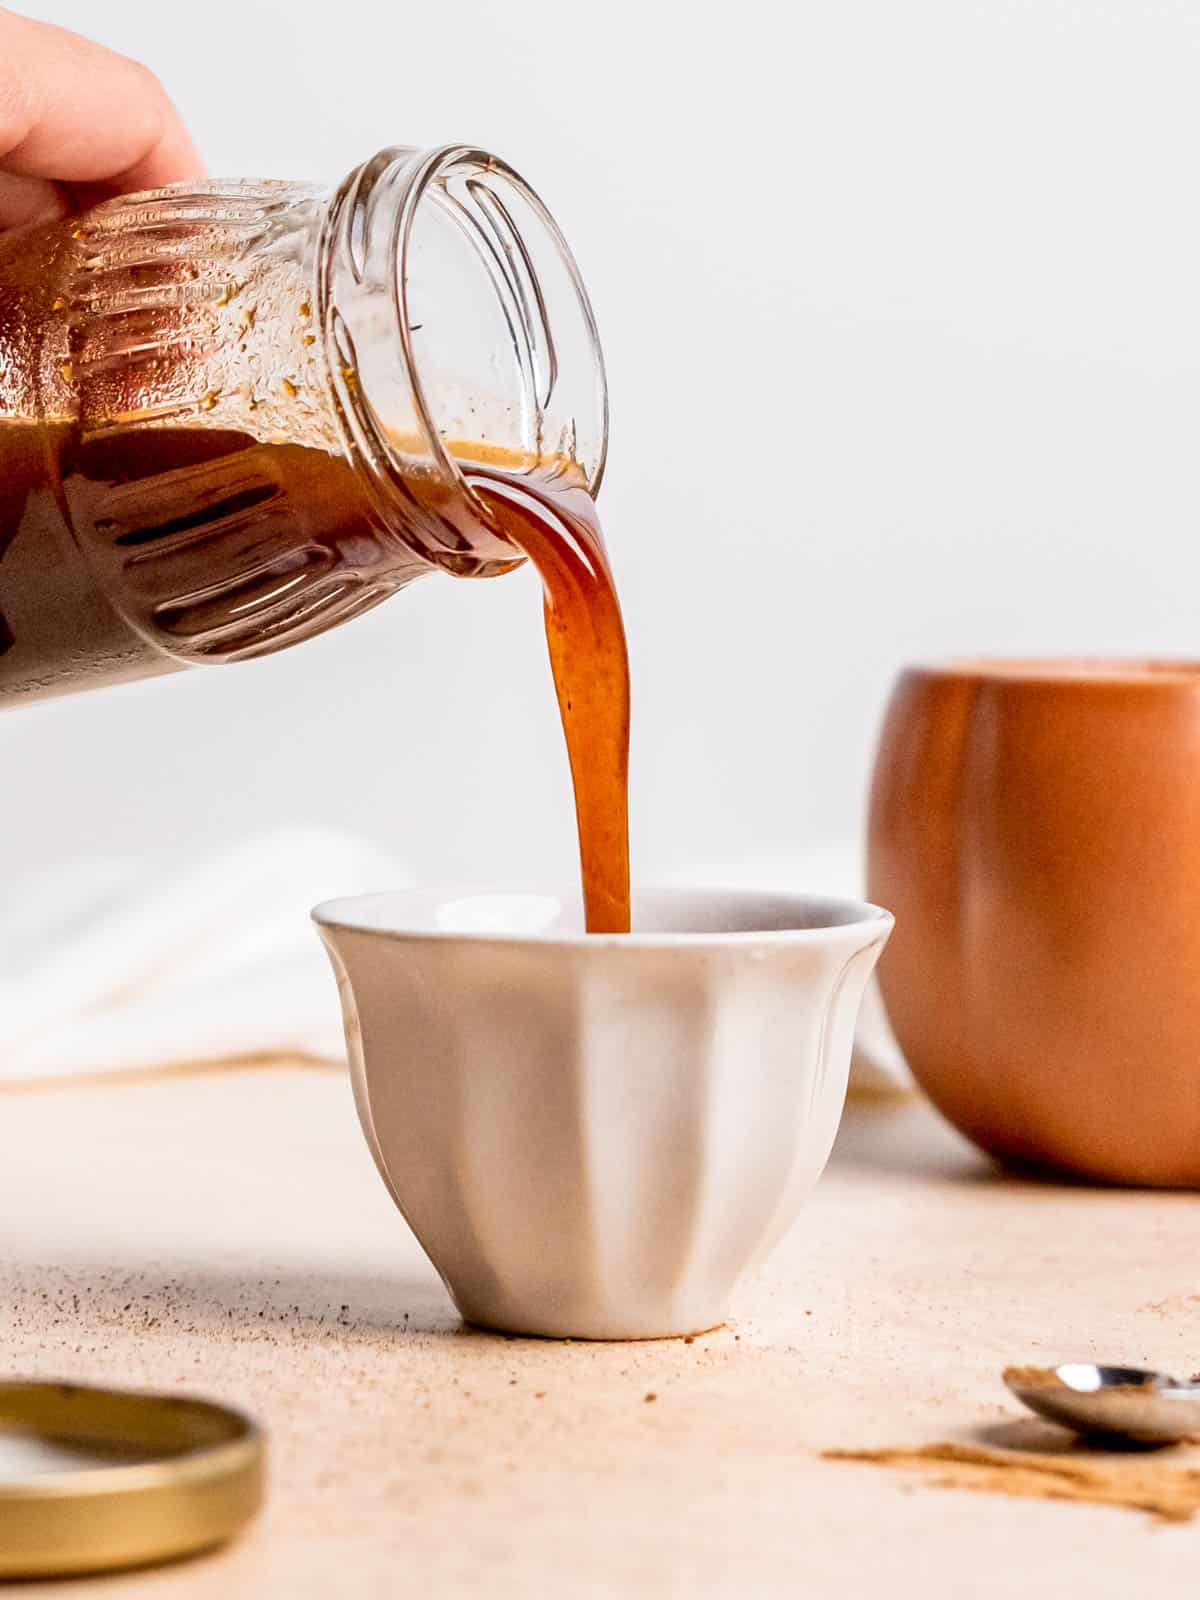 Pouring pumpkin spice syrup from a small glass jar into a tiny ceramic bowl